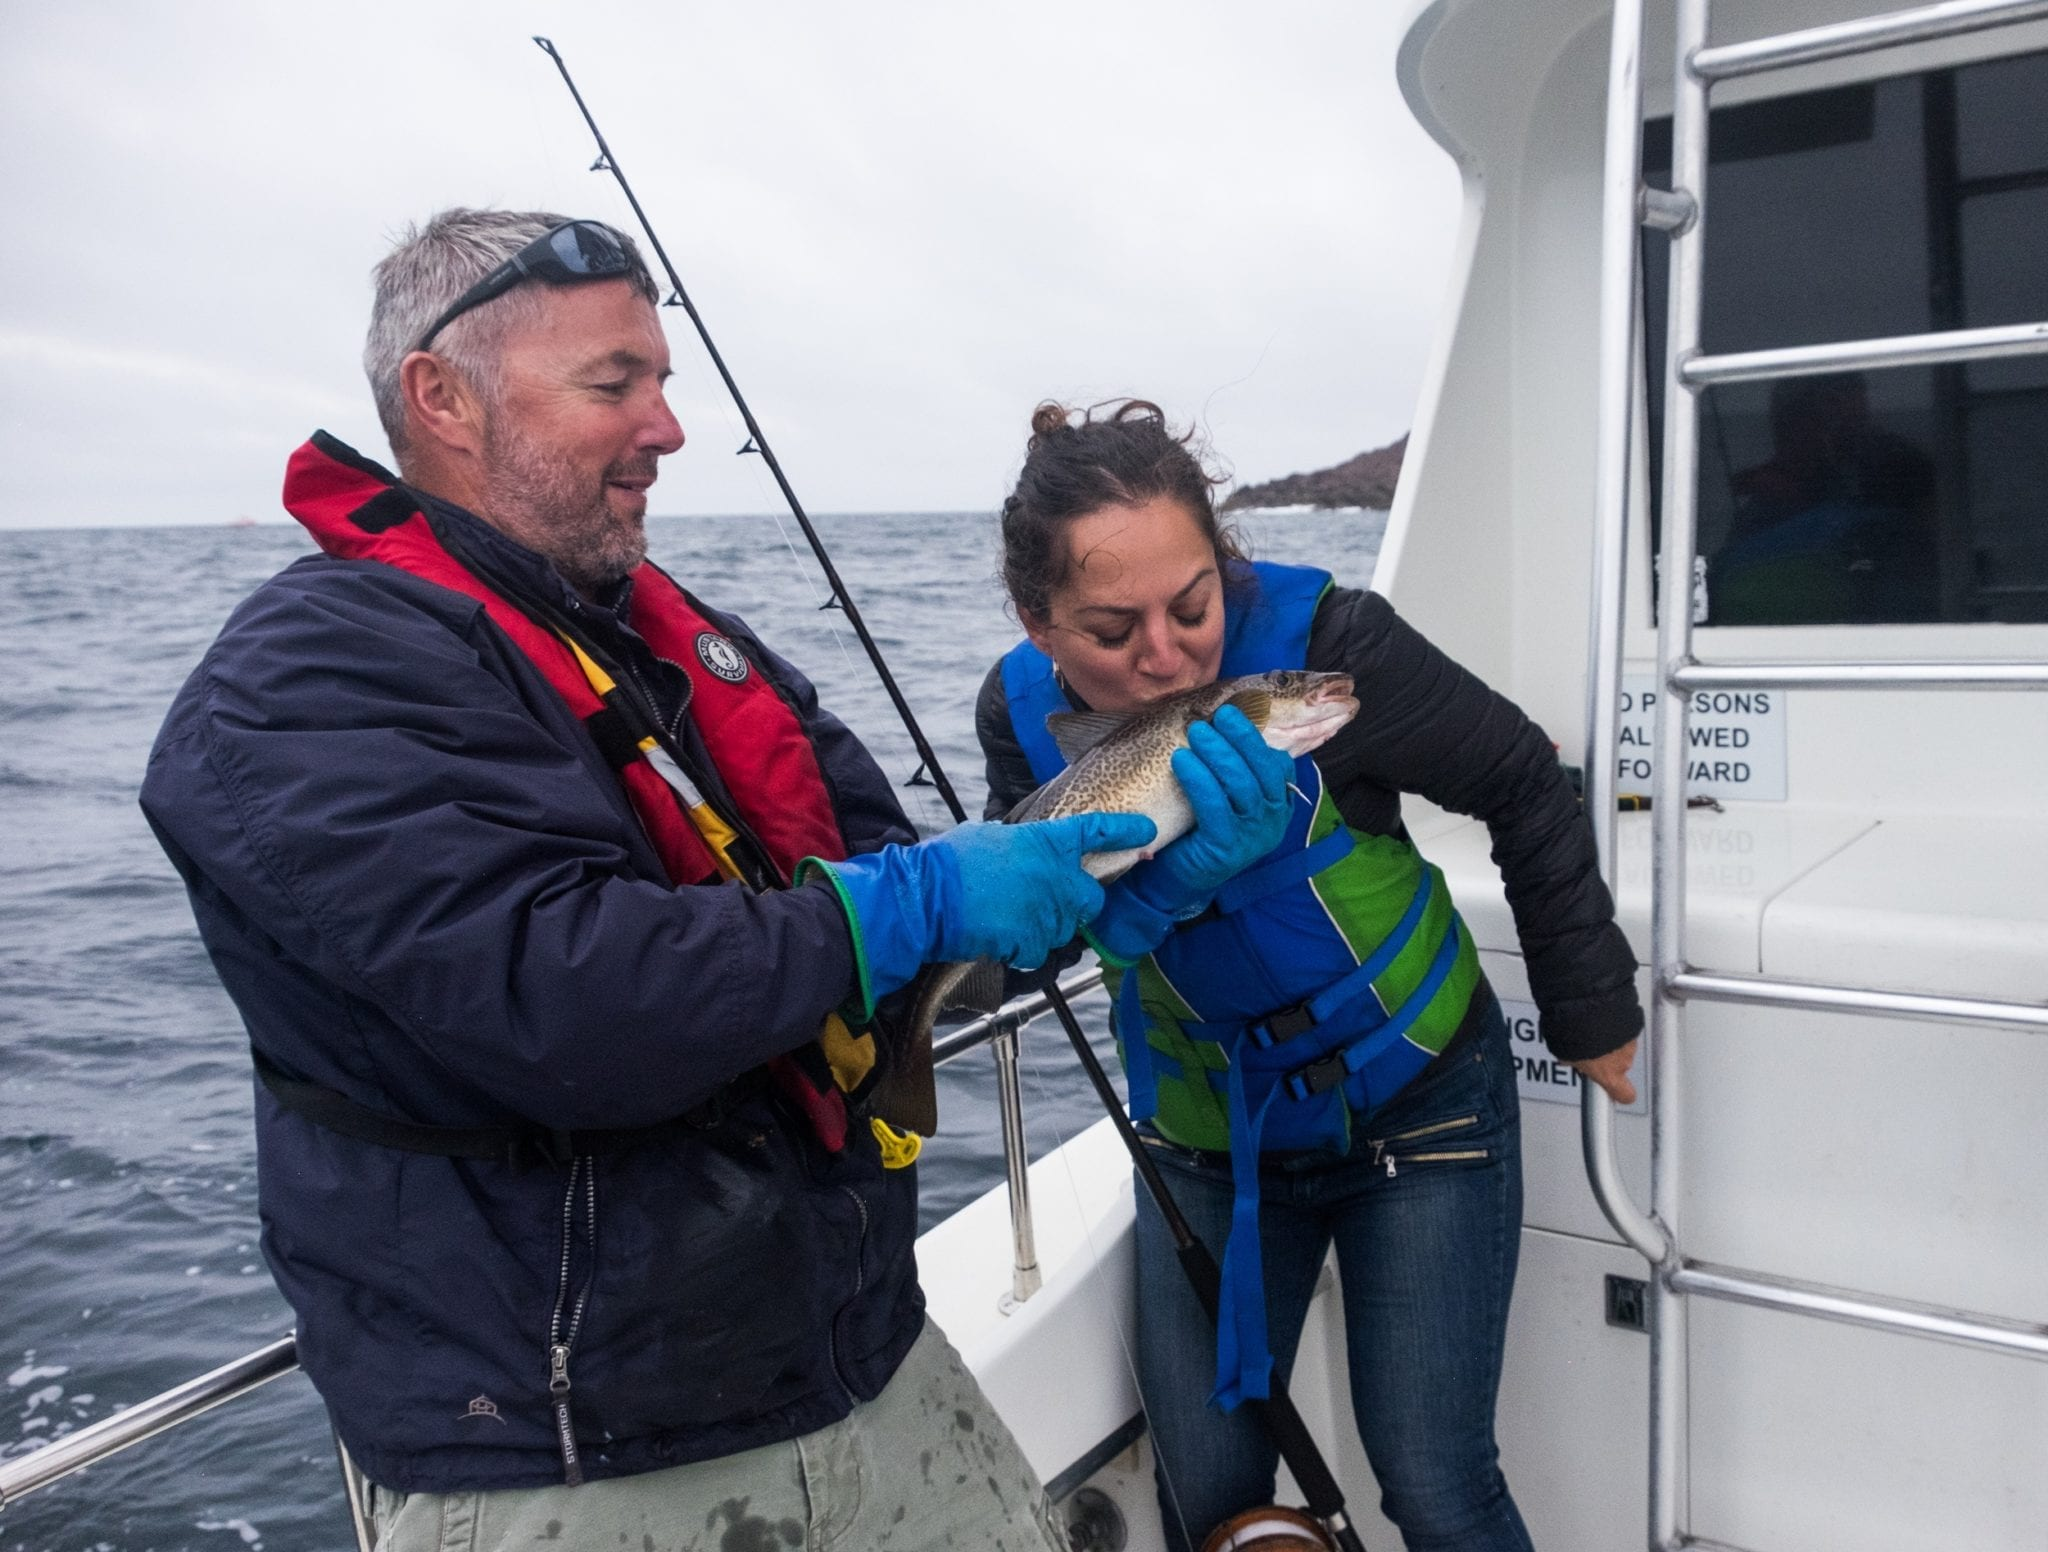 A fisherman holds up a cod for Kate and she leans in and kisses it.